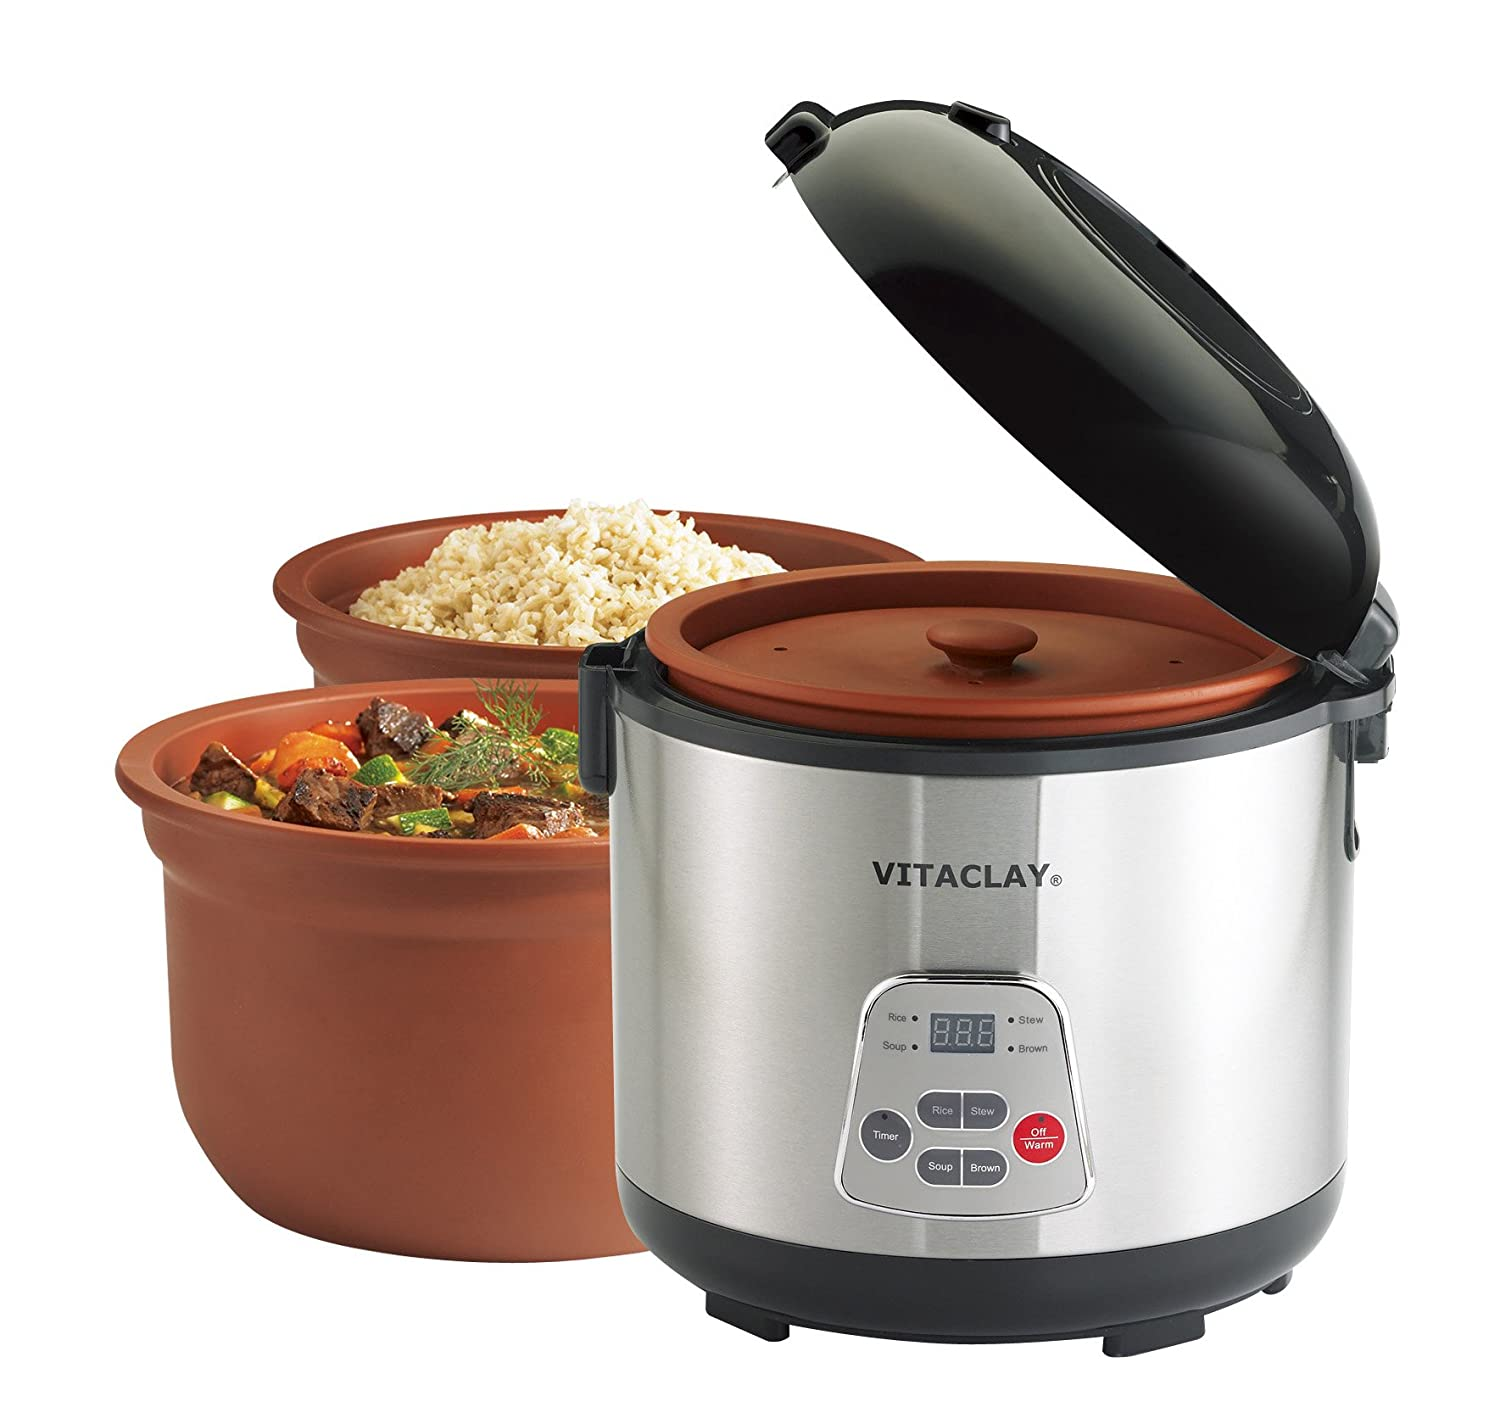 com vitaclay vf chef gourmet cup rice and slow com vitaclay vf7700 8 chef gourmet 8 cup rice and slow cooker clay crock pot kitchen dining